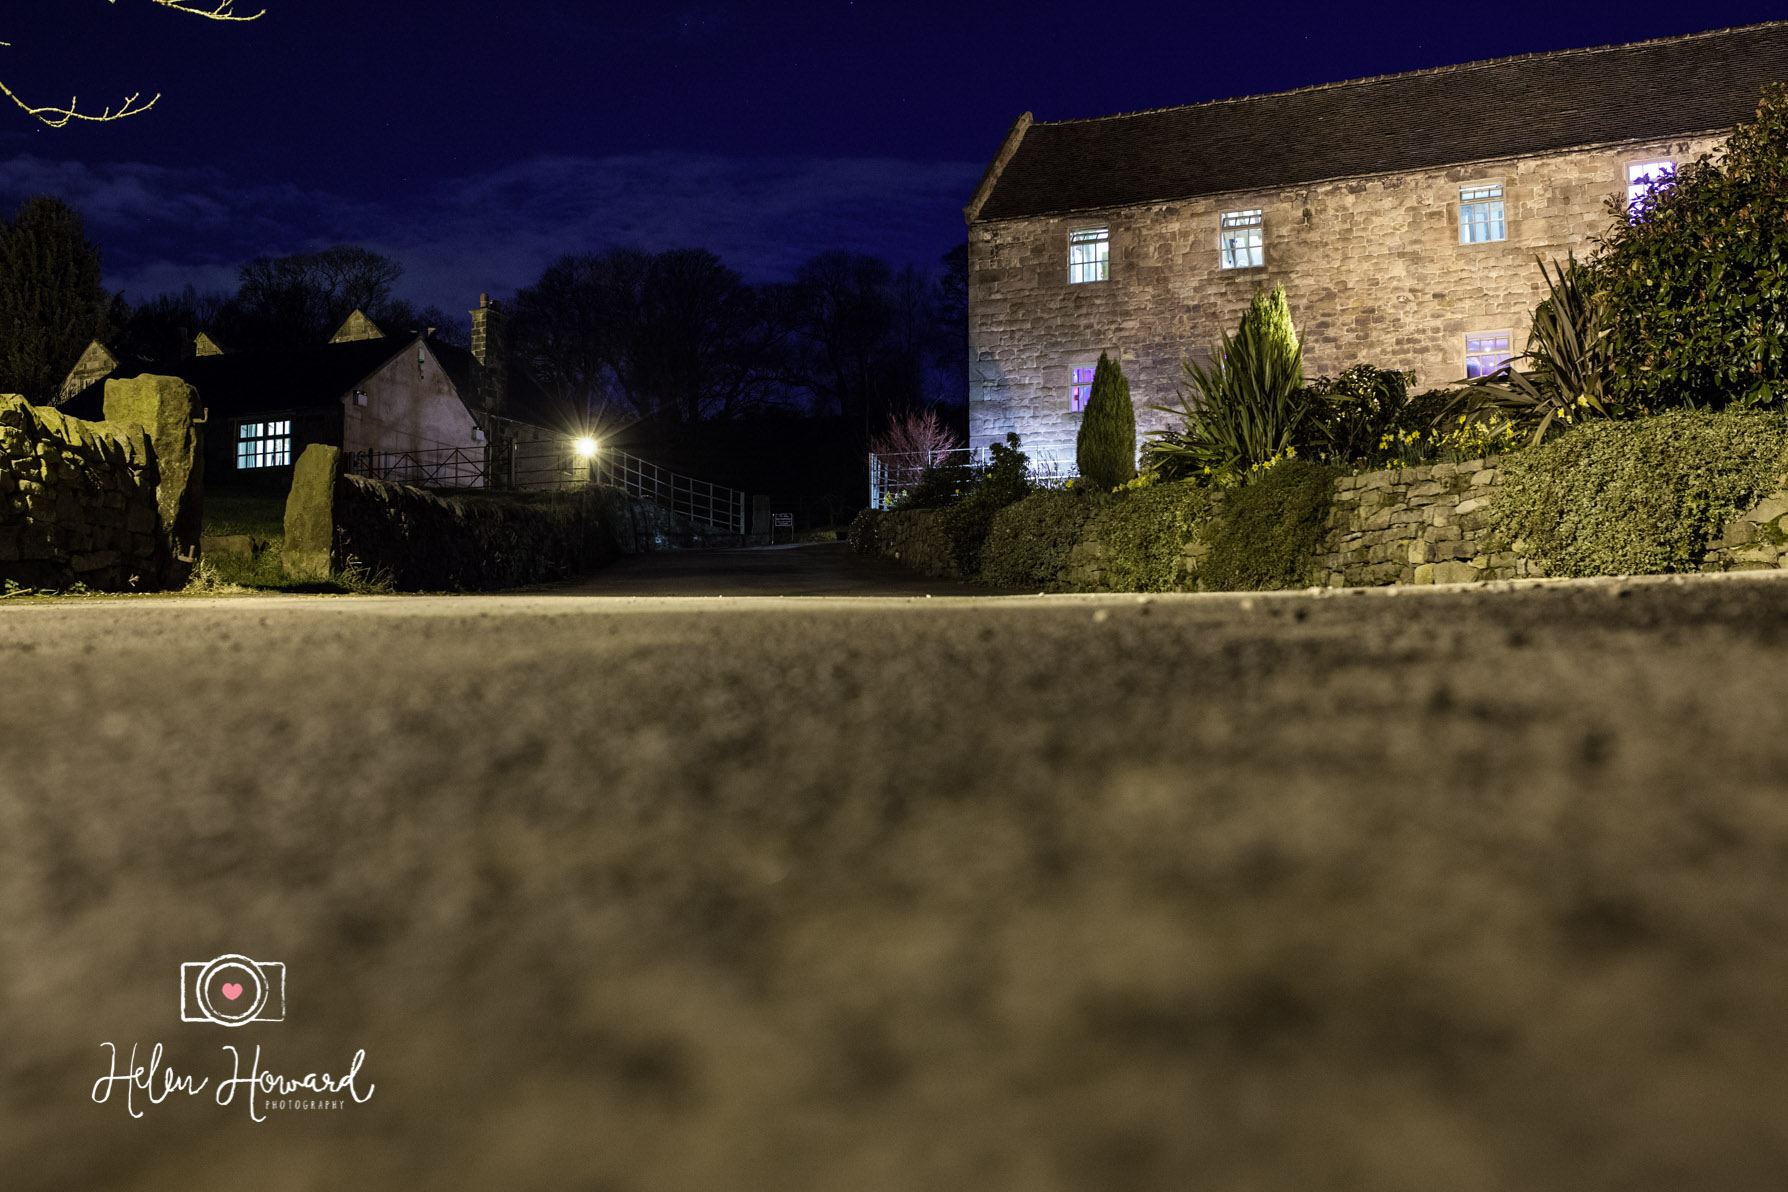 Night time shot of The Ashes in Endon